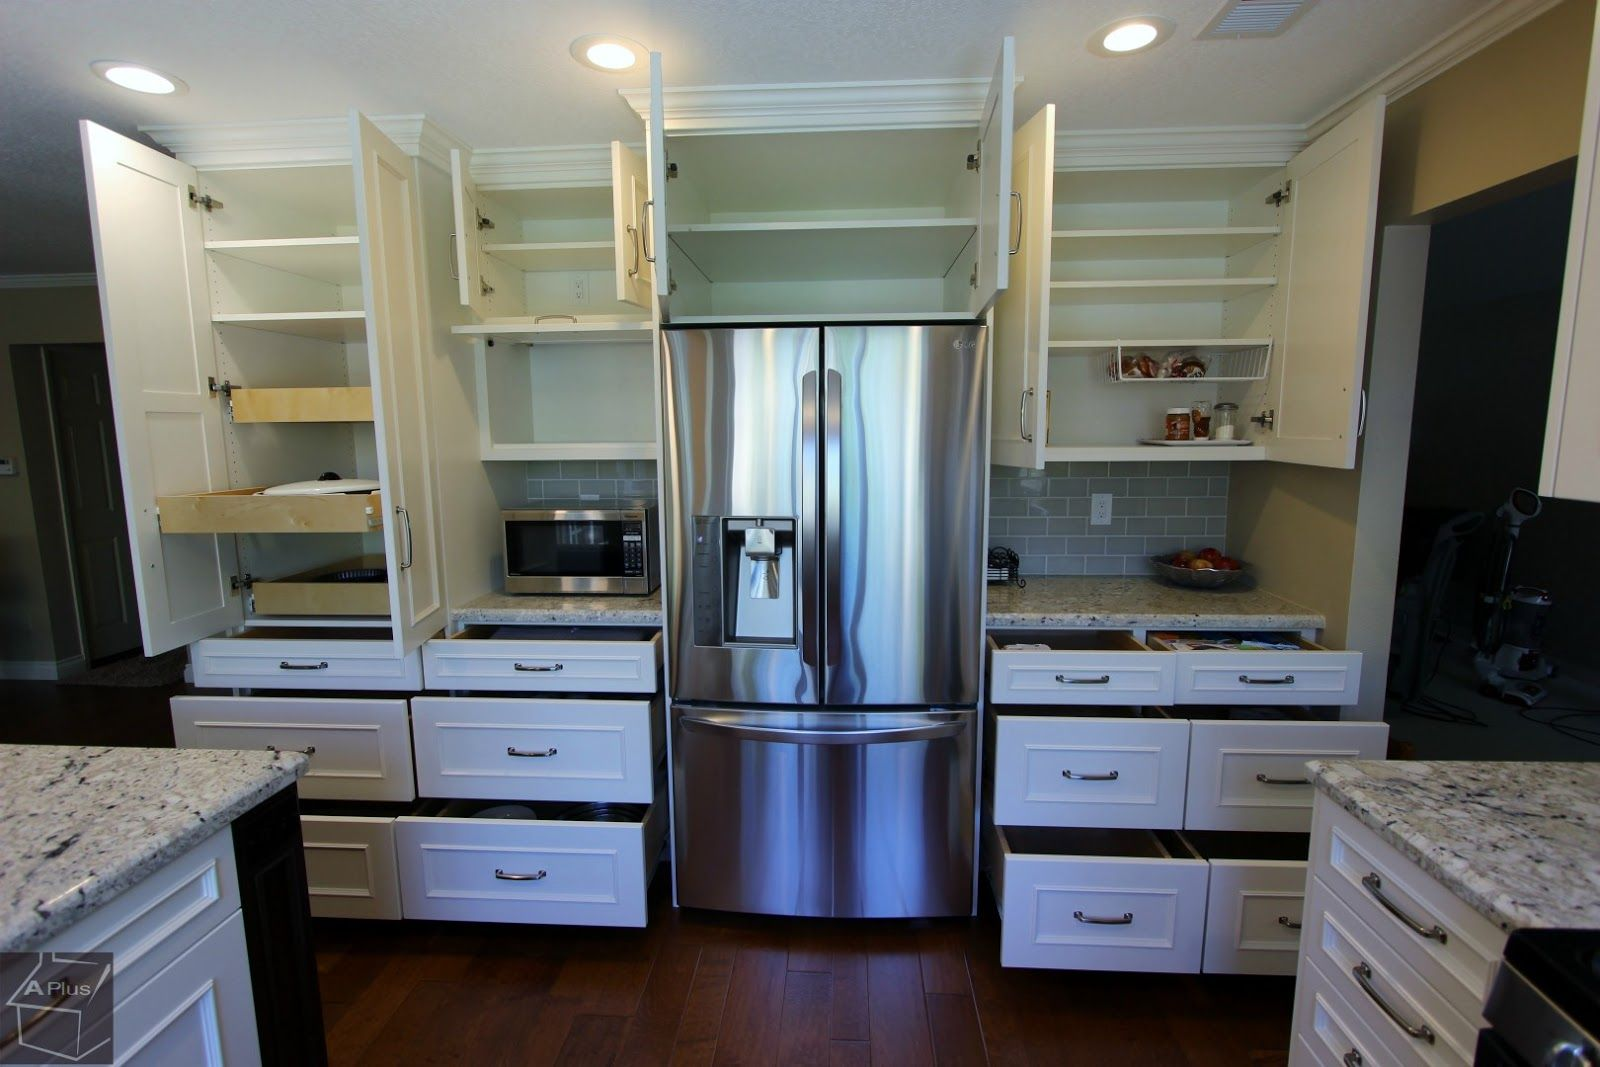 Irvine Complete Kitchen Remodel With Brand new Custom ...